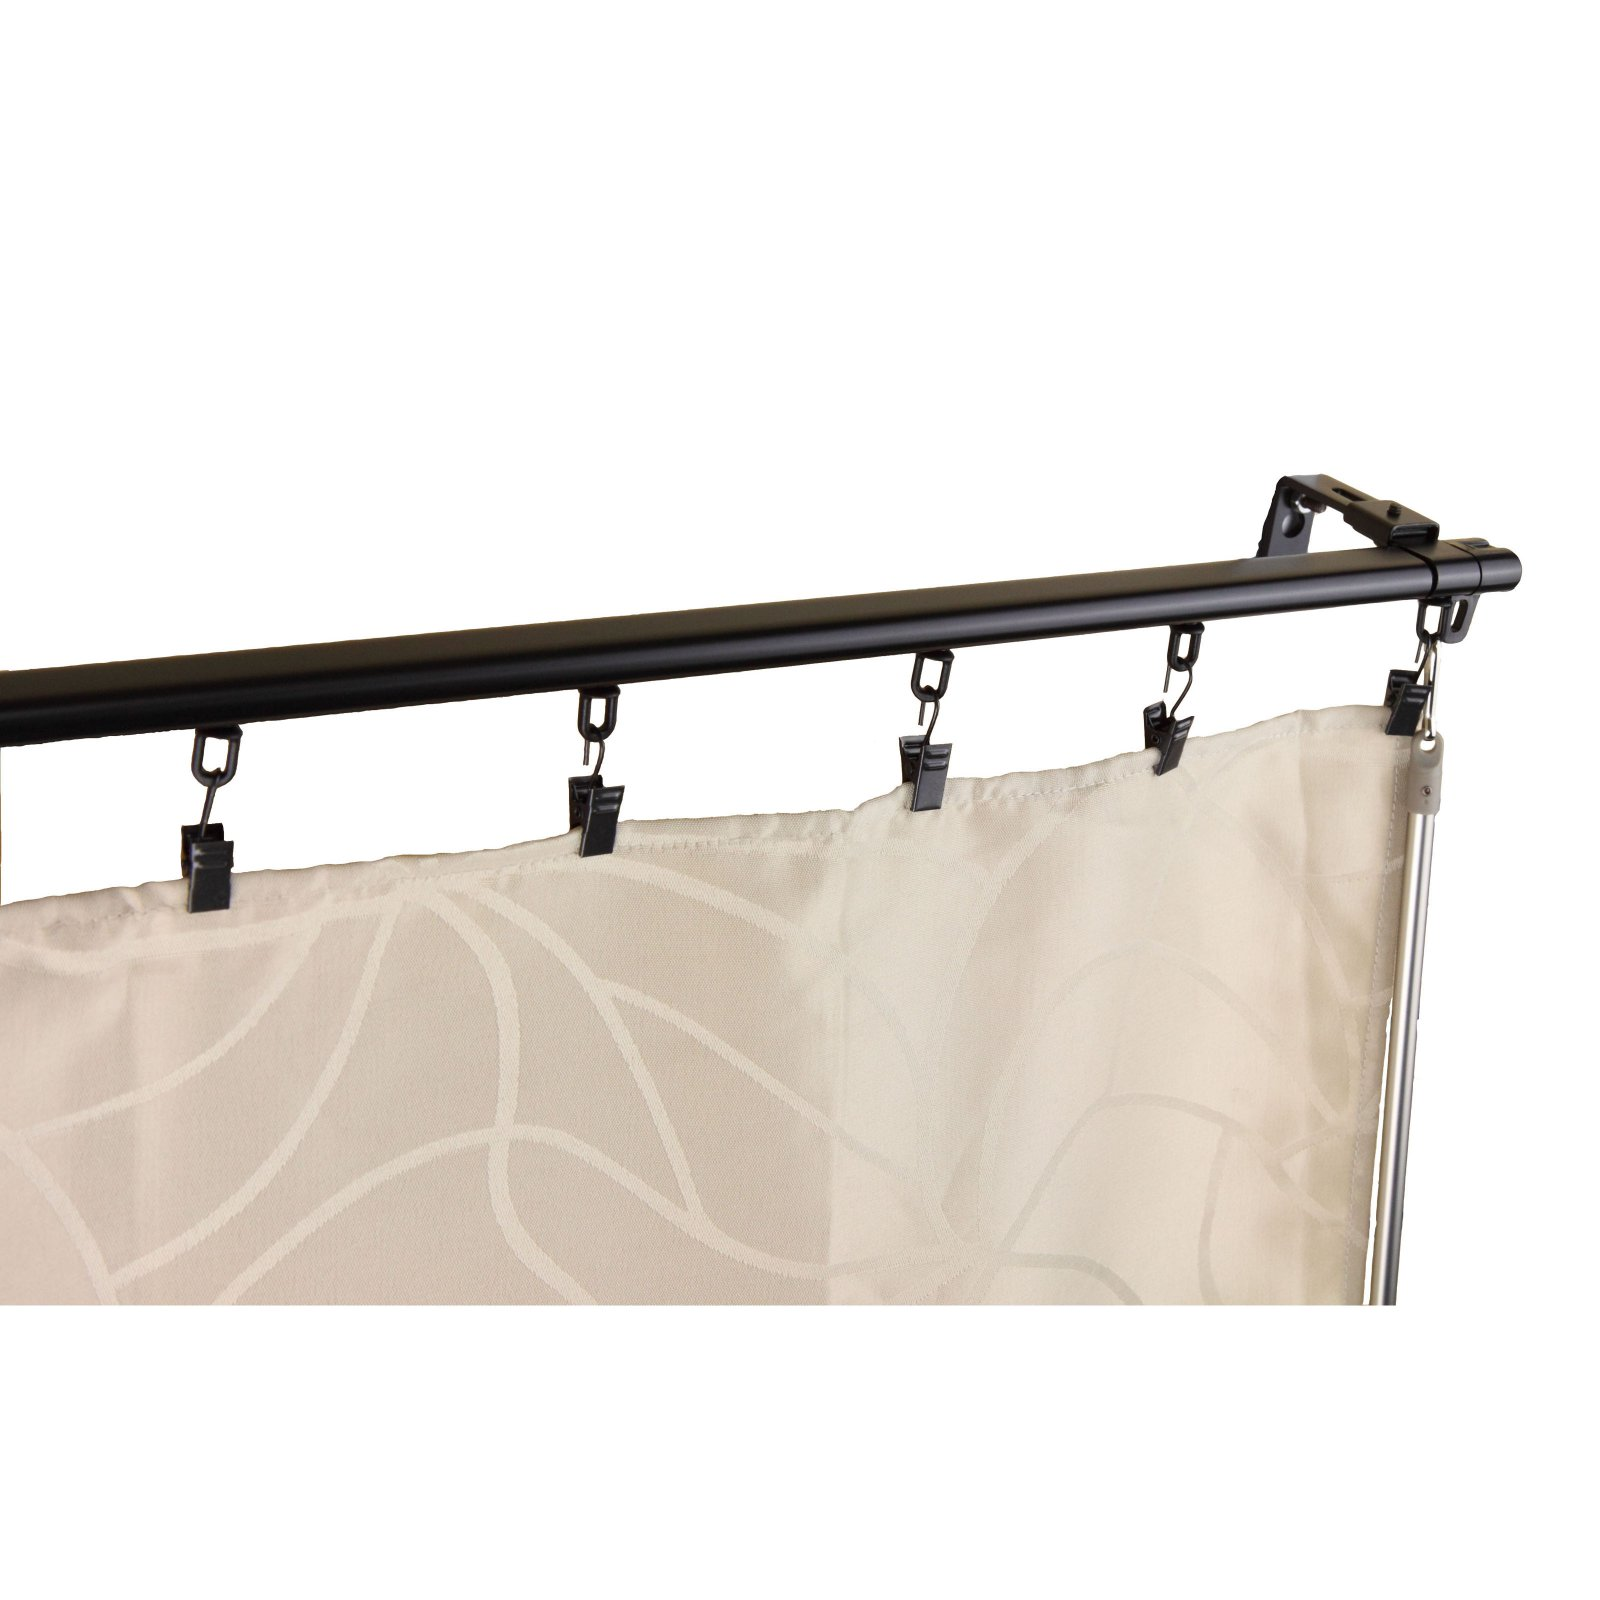 instyledesign heavy duty white wall or ceiling curtain track room divider